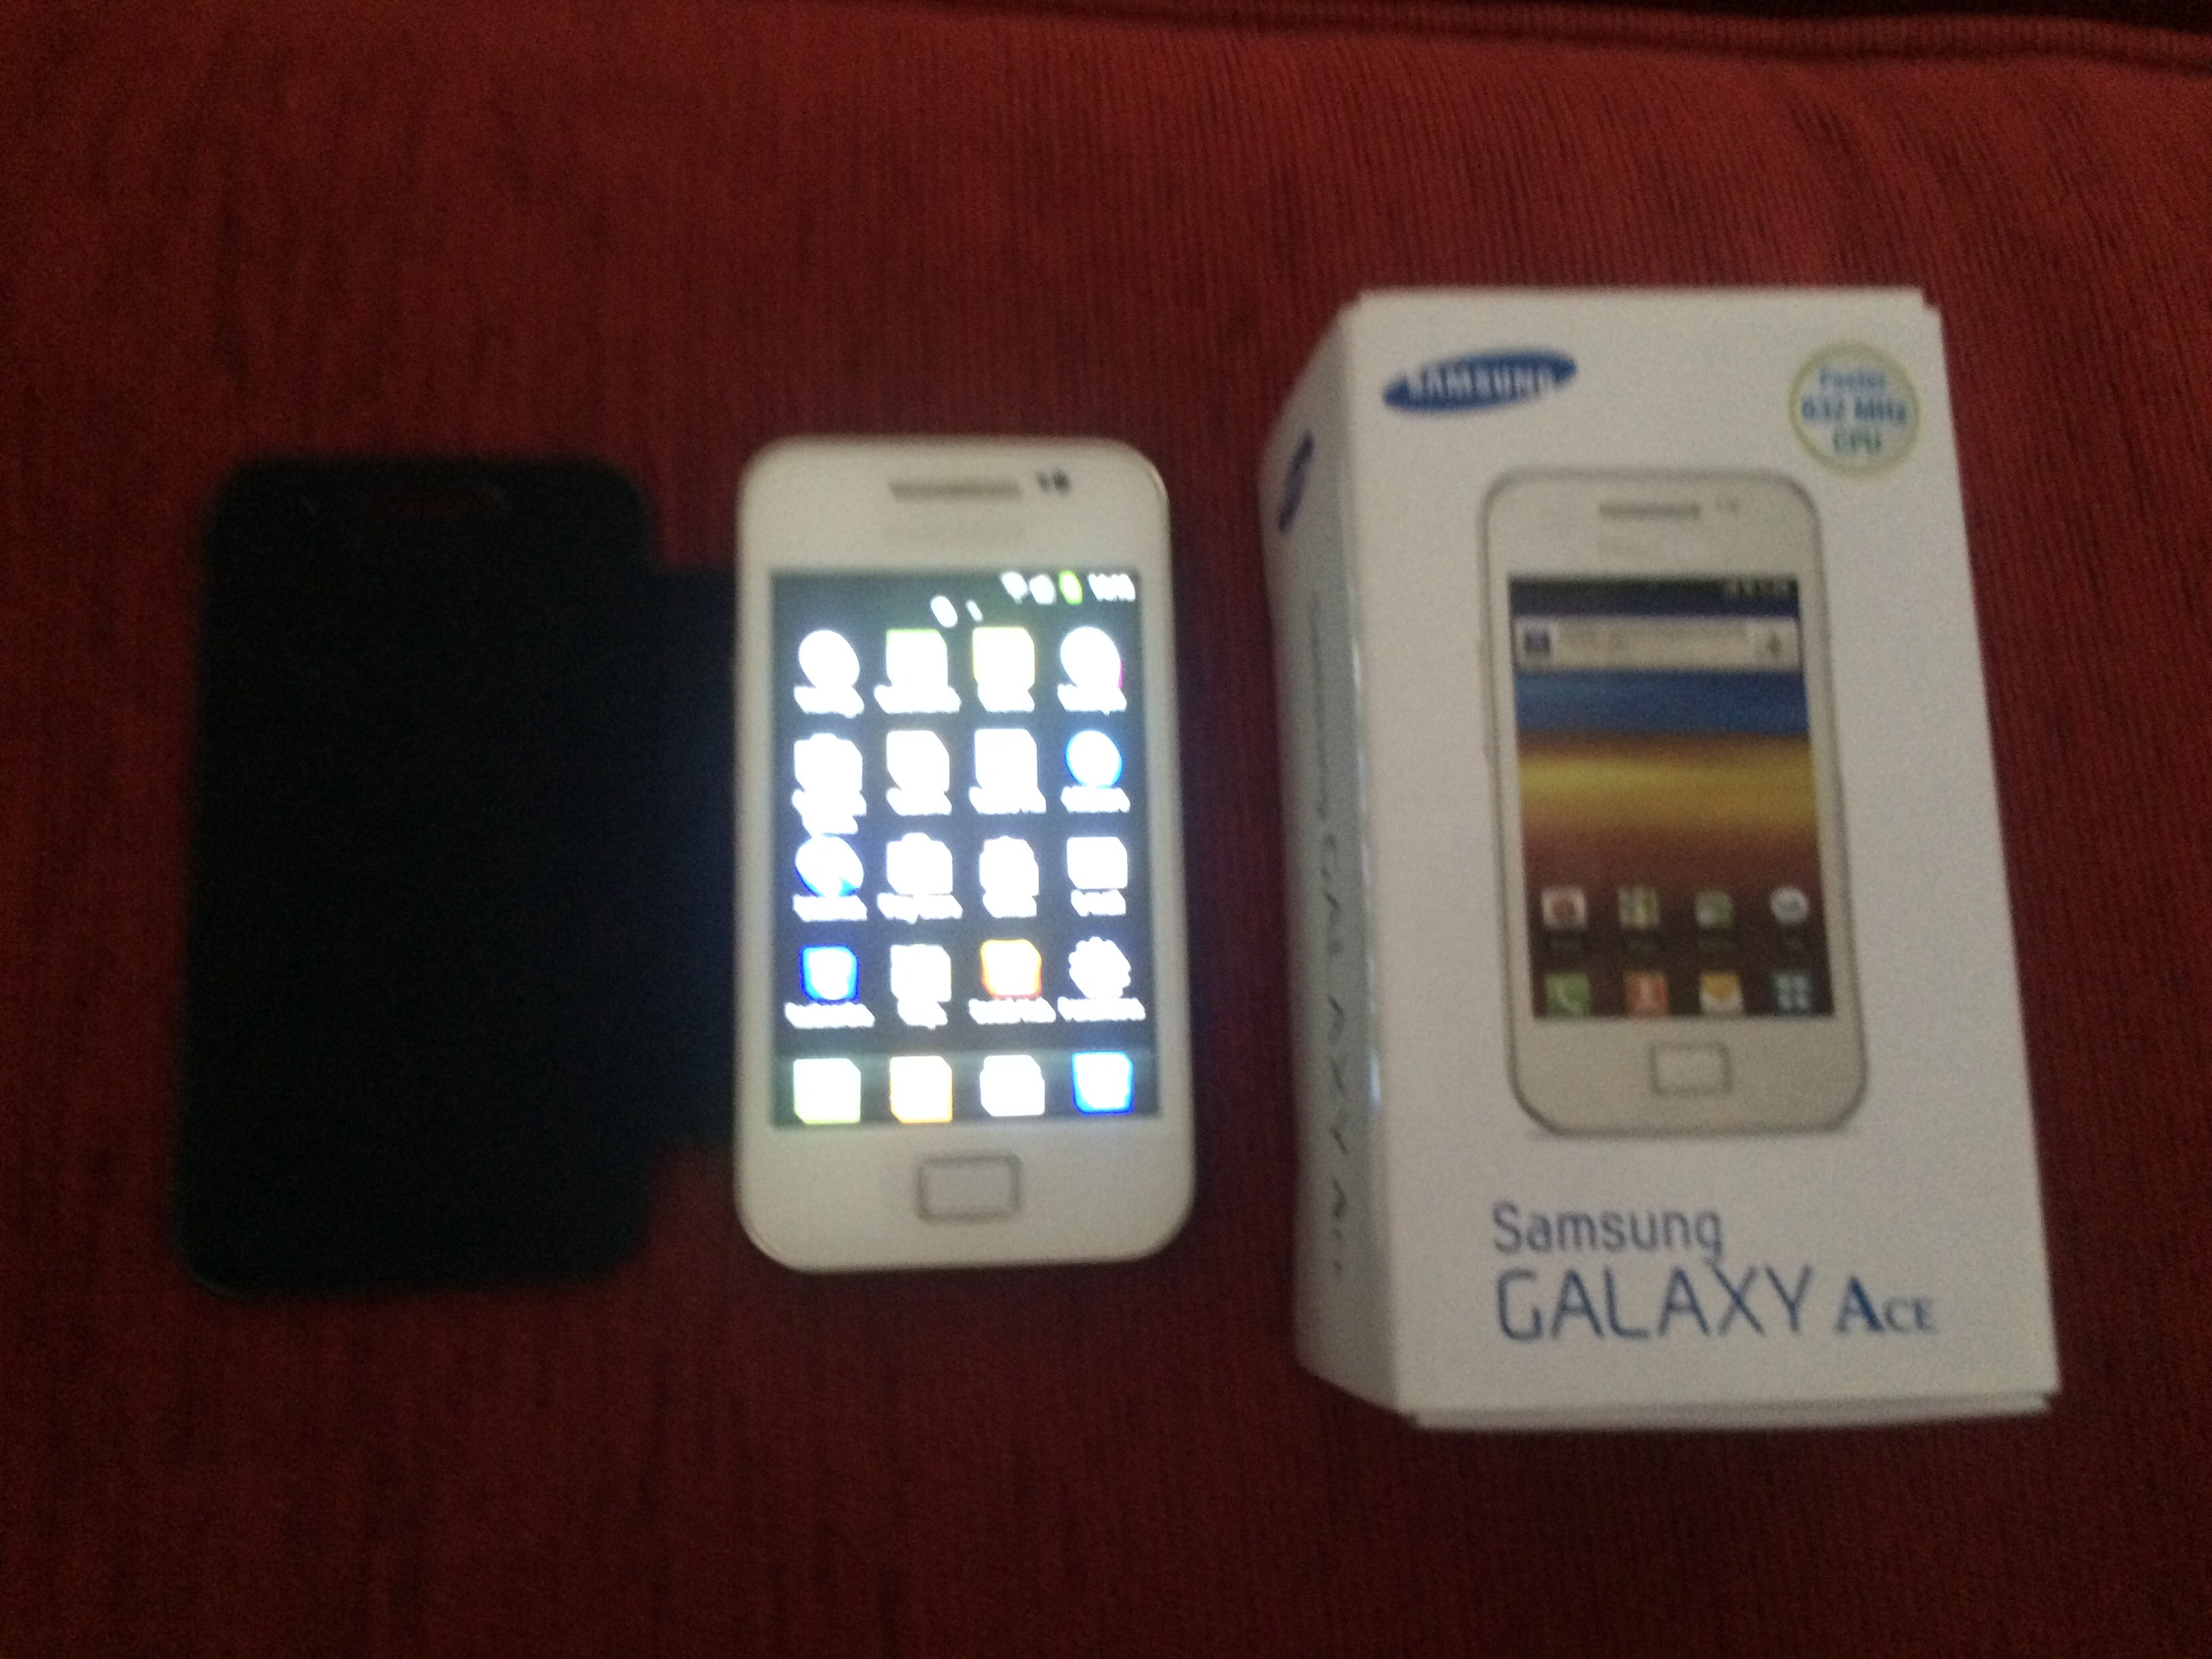 SAMSUNG GALAXI ACE 100 Montpellier (34)